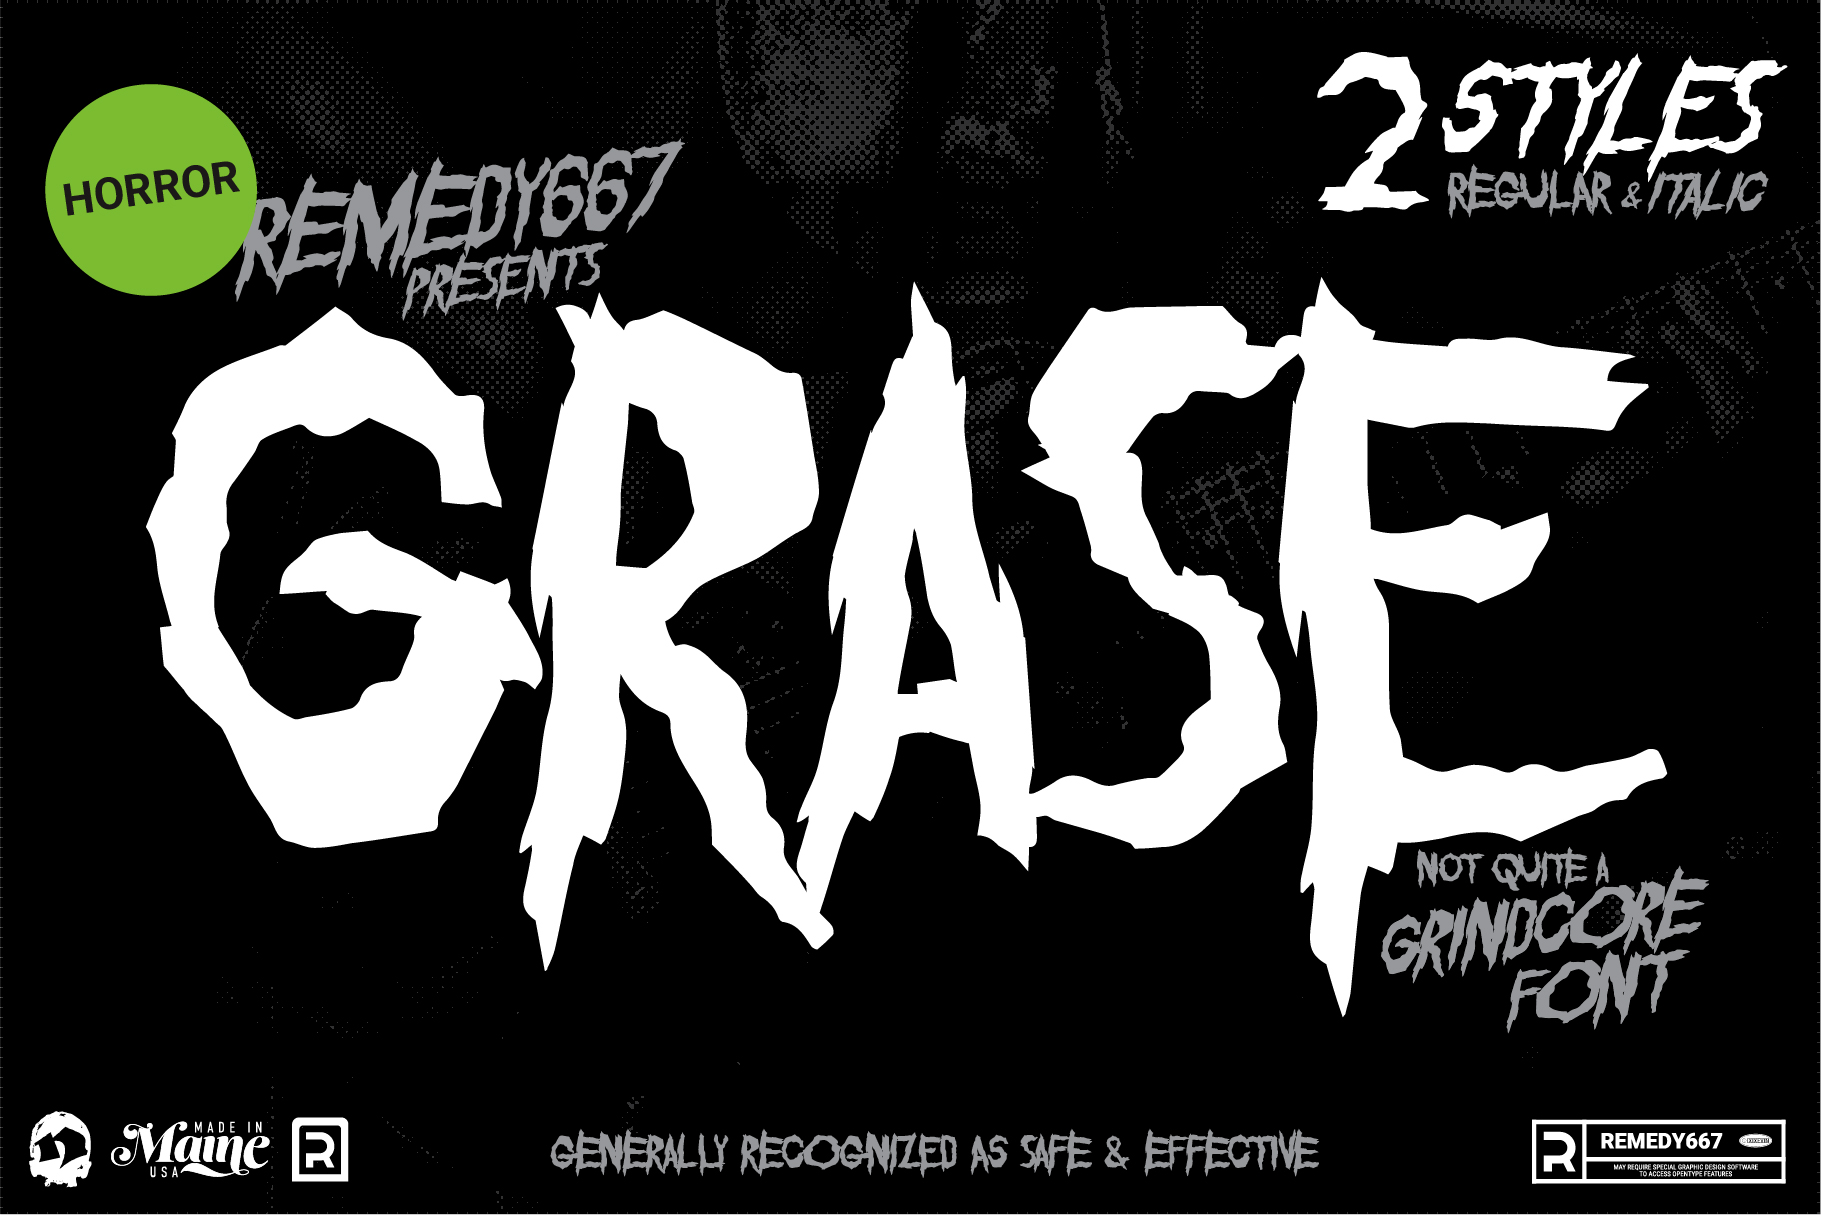 Grase font by Remedy667. Not quite a Grindcore font. Contains 2 styles: Regular and Italic.